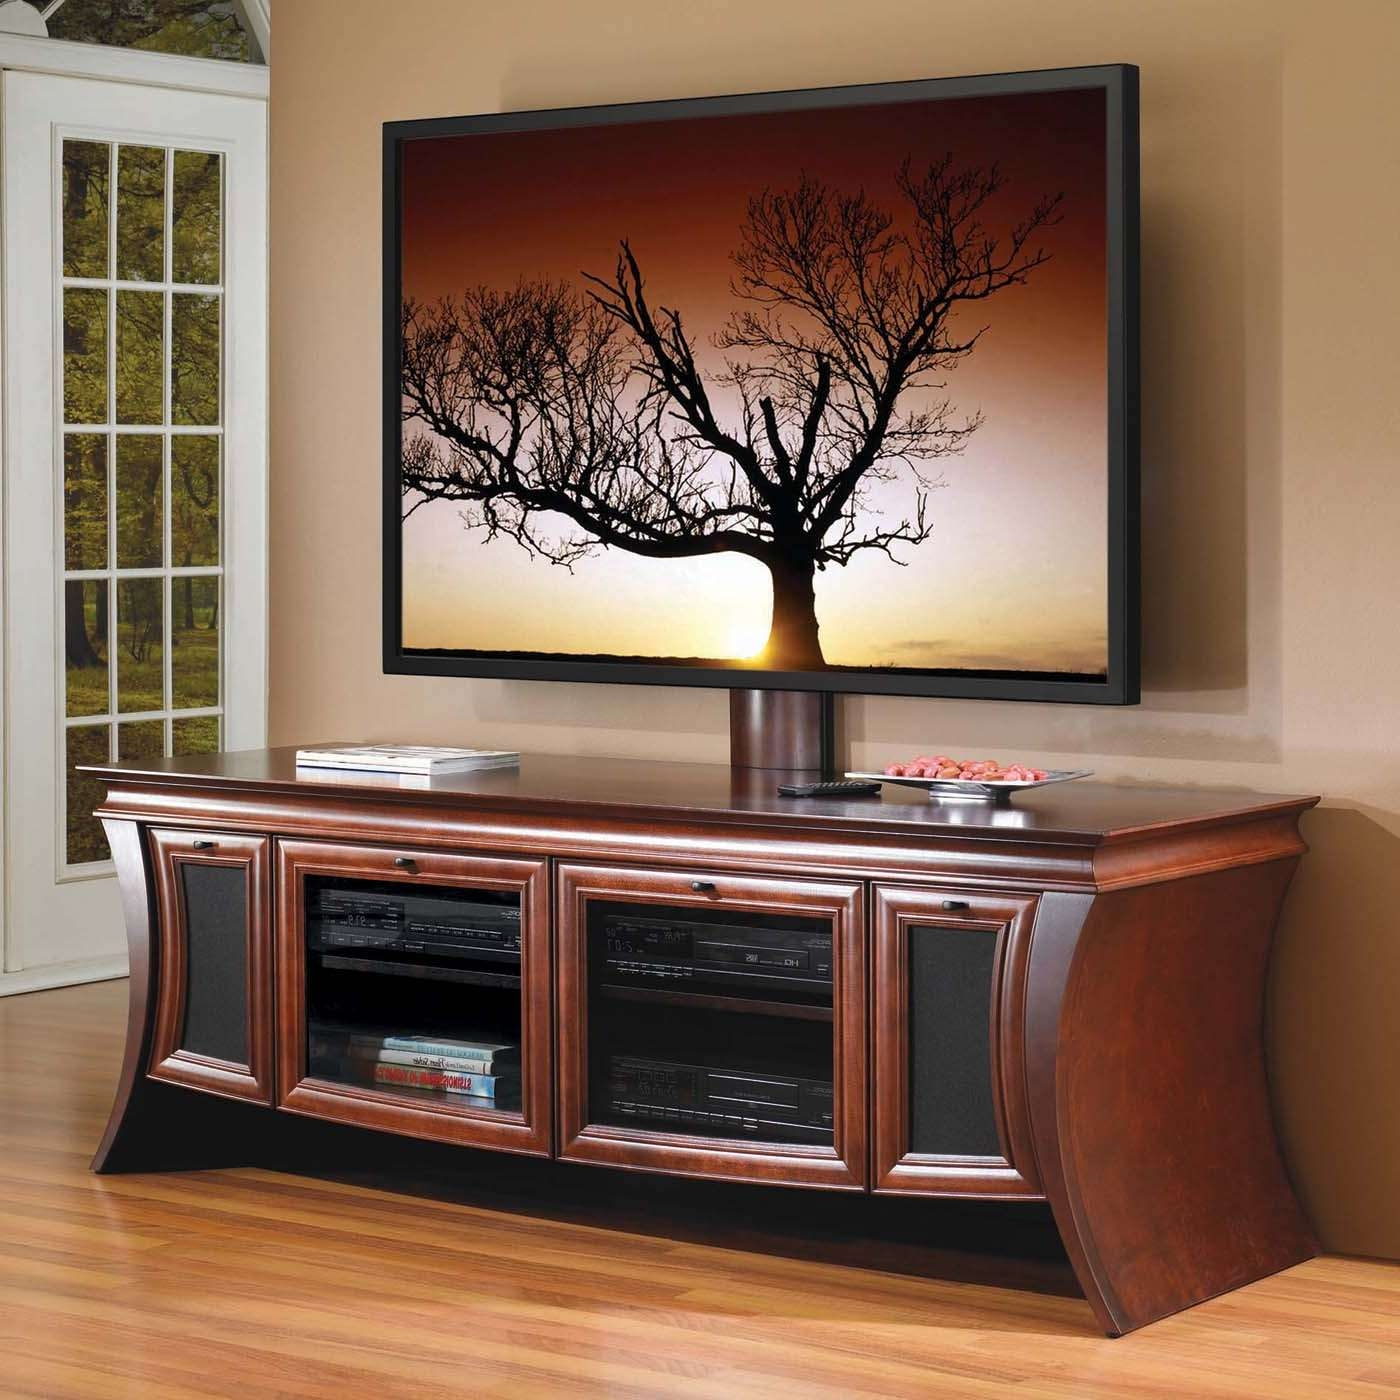 Furnitures Media Stands For Flat Screen Tvs Furniture The Best Within Wooden Tv Cabinets With Glass Doors (View 6 of 20)